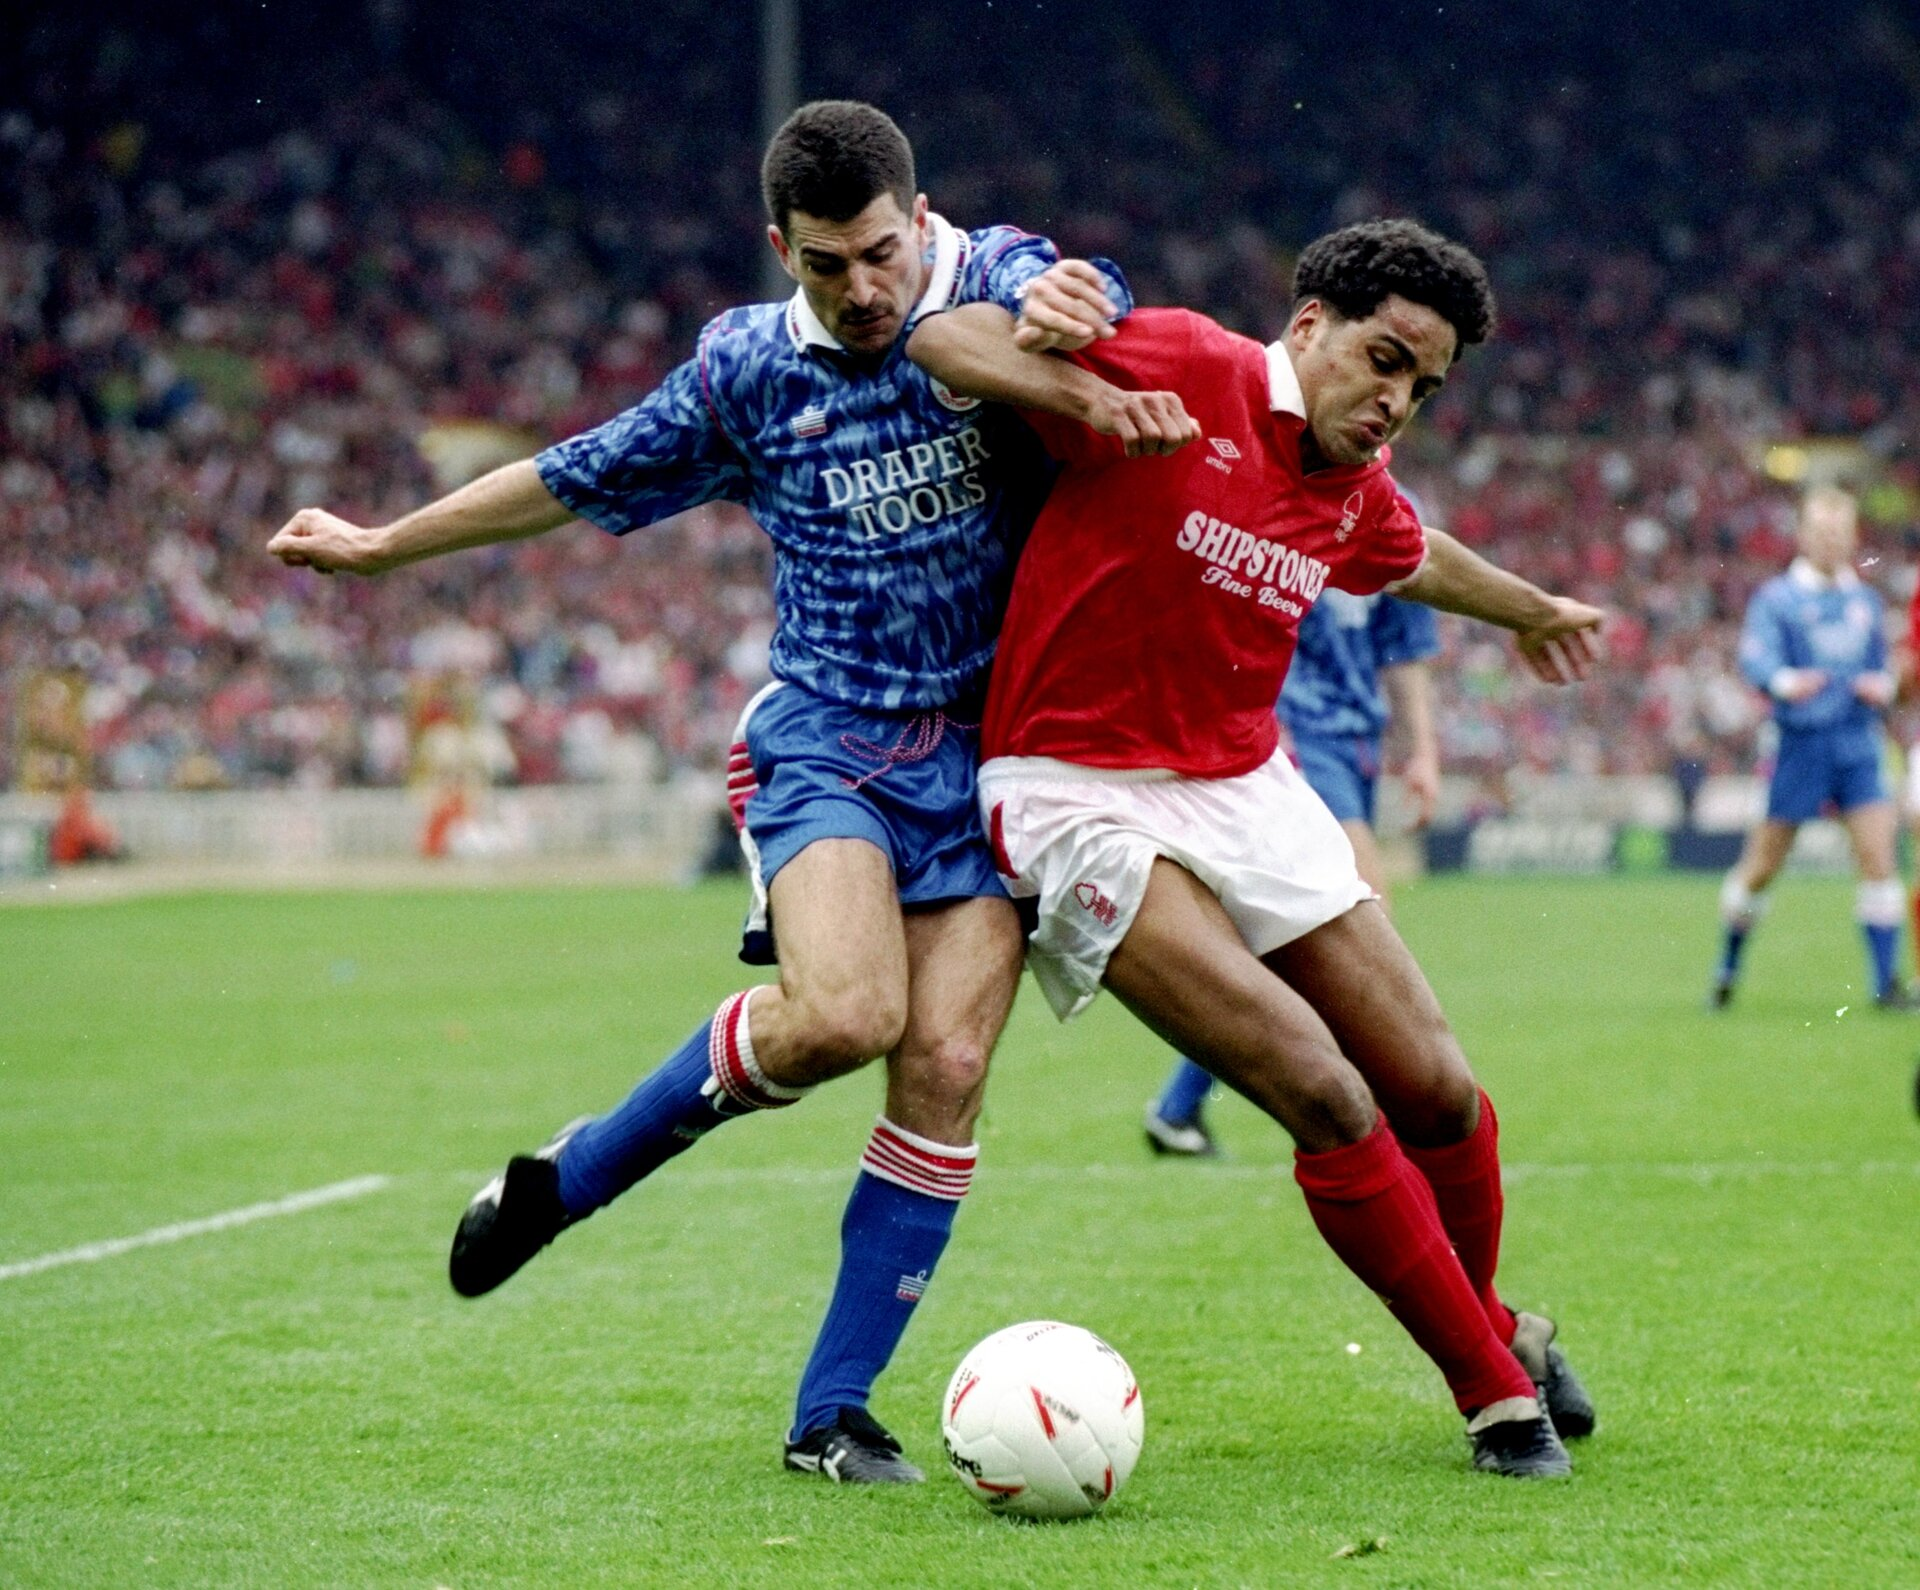 29 Mar 1992:  Gary Charles of Nottingham Forest fends off Francis Benali of Southampton during the Zenith Data Cup final at Wembley Stadium in London. Nottingham Forest won the match 3-2. \ Mandatory Credit: Shaun  Botterill/Allsport